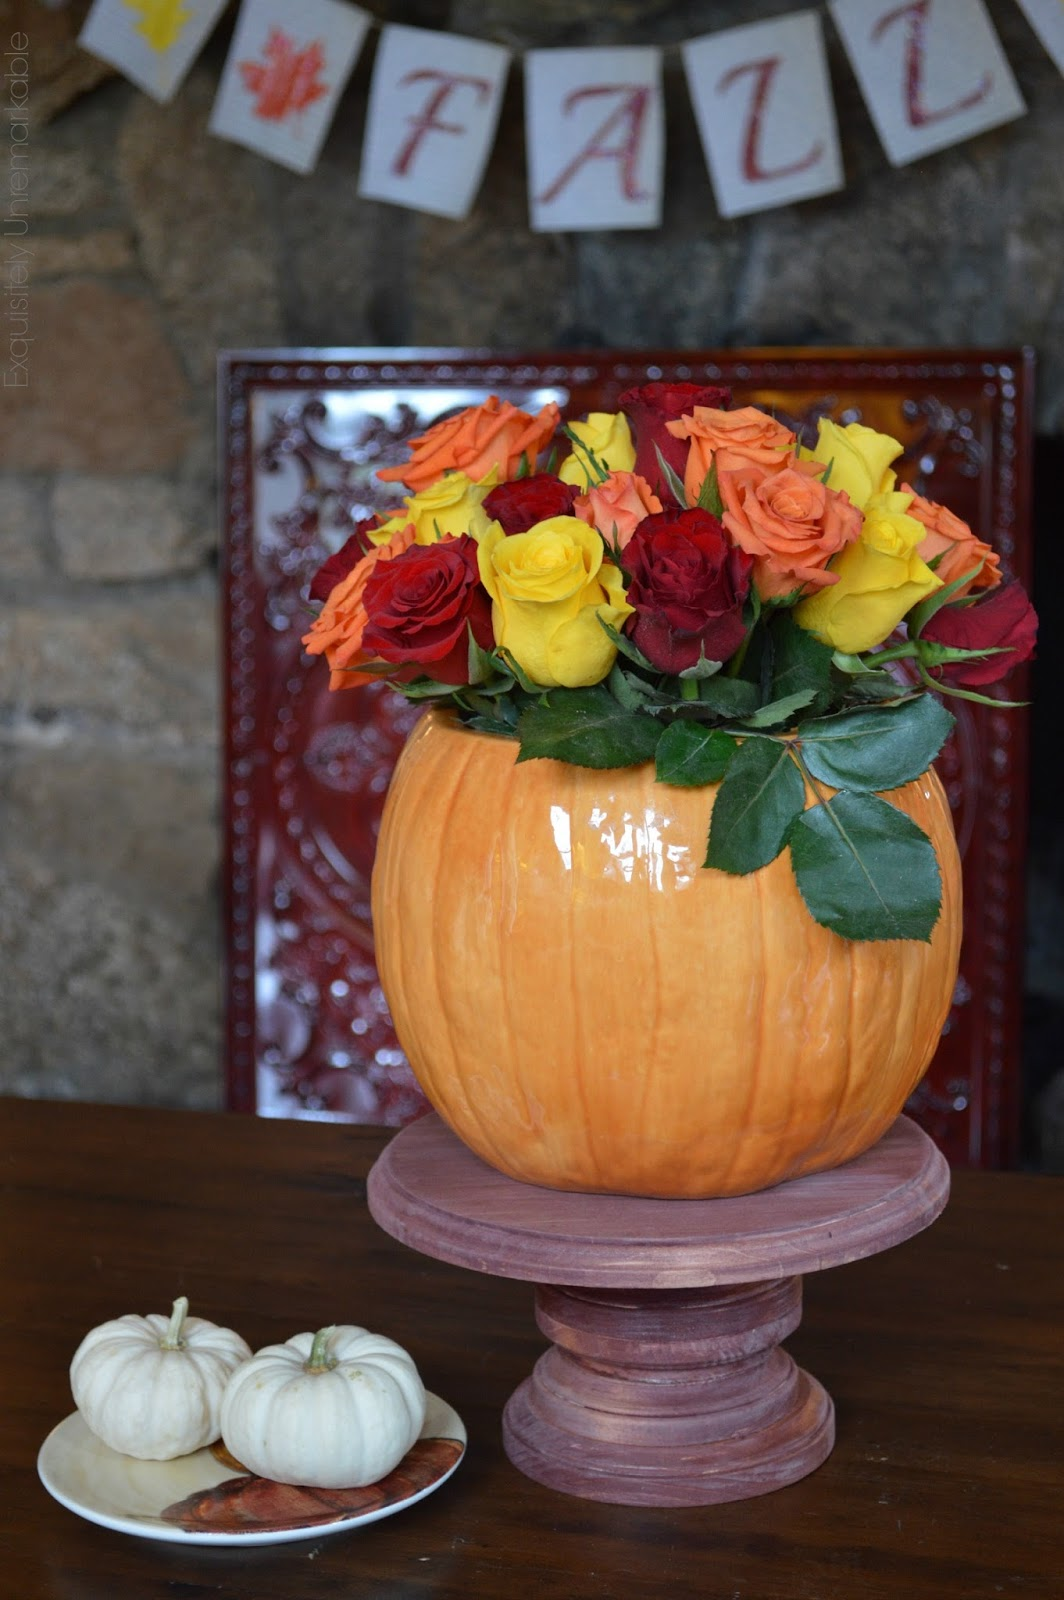 Fall floral arrangement set it pumpkin vase on wooden cake plate